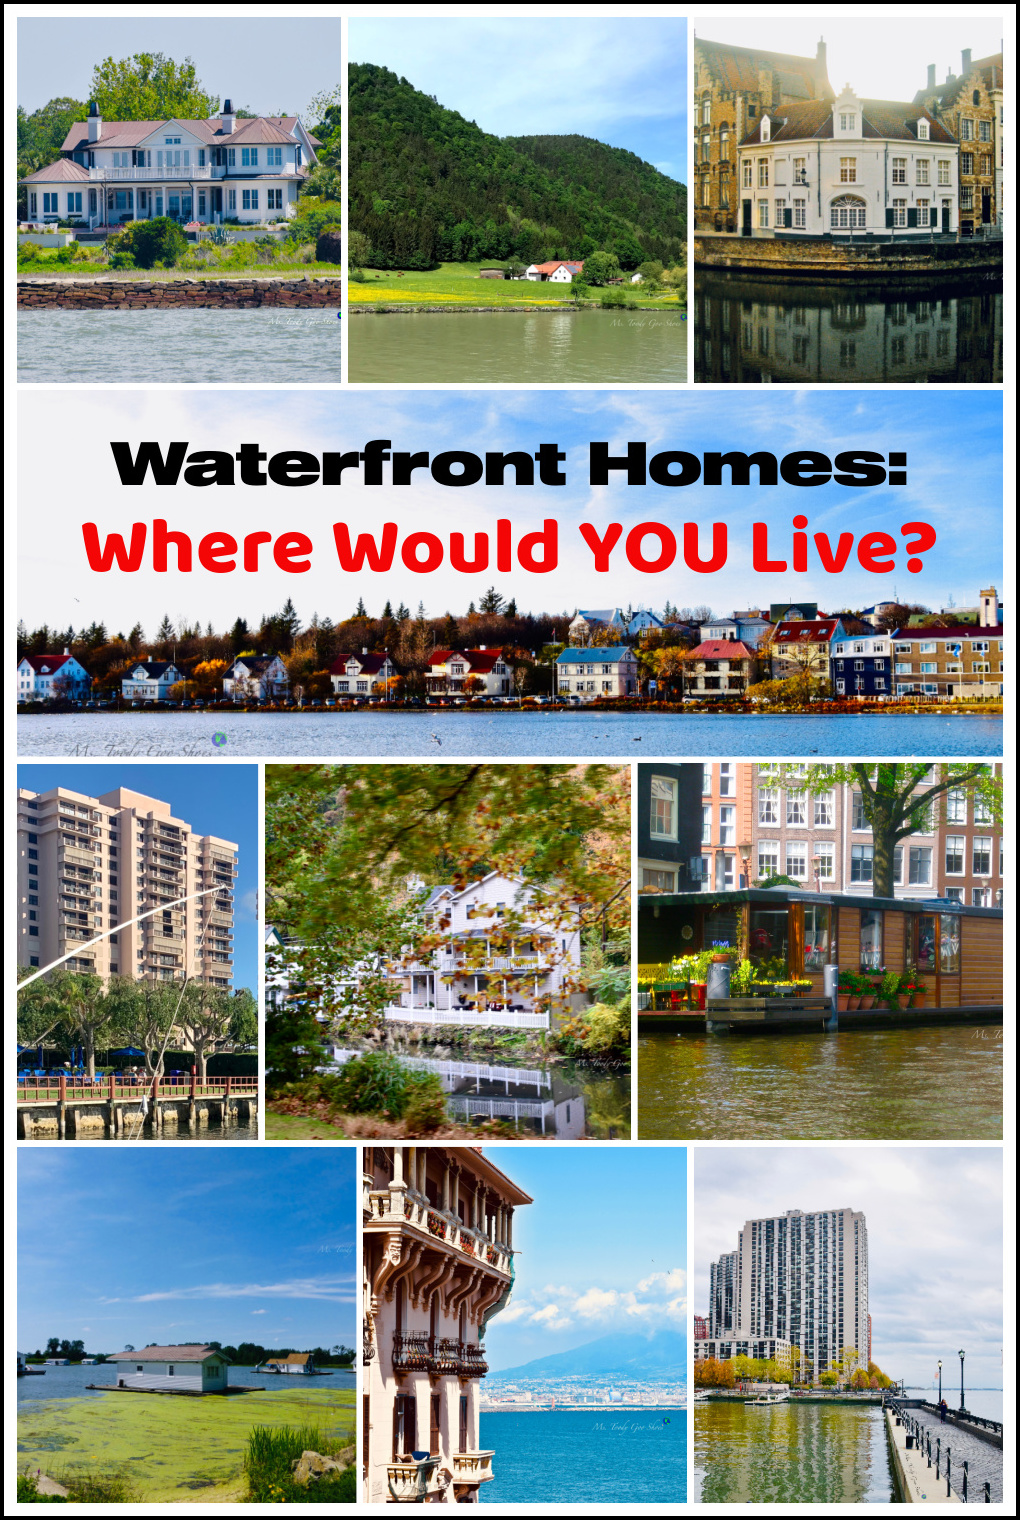 Which waterfront home would you choose to live in? Ms. Toody Goo Shoes